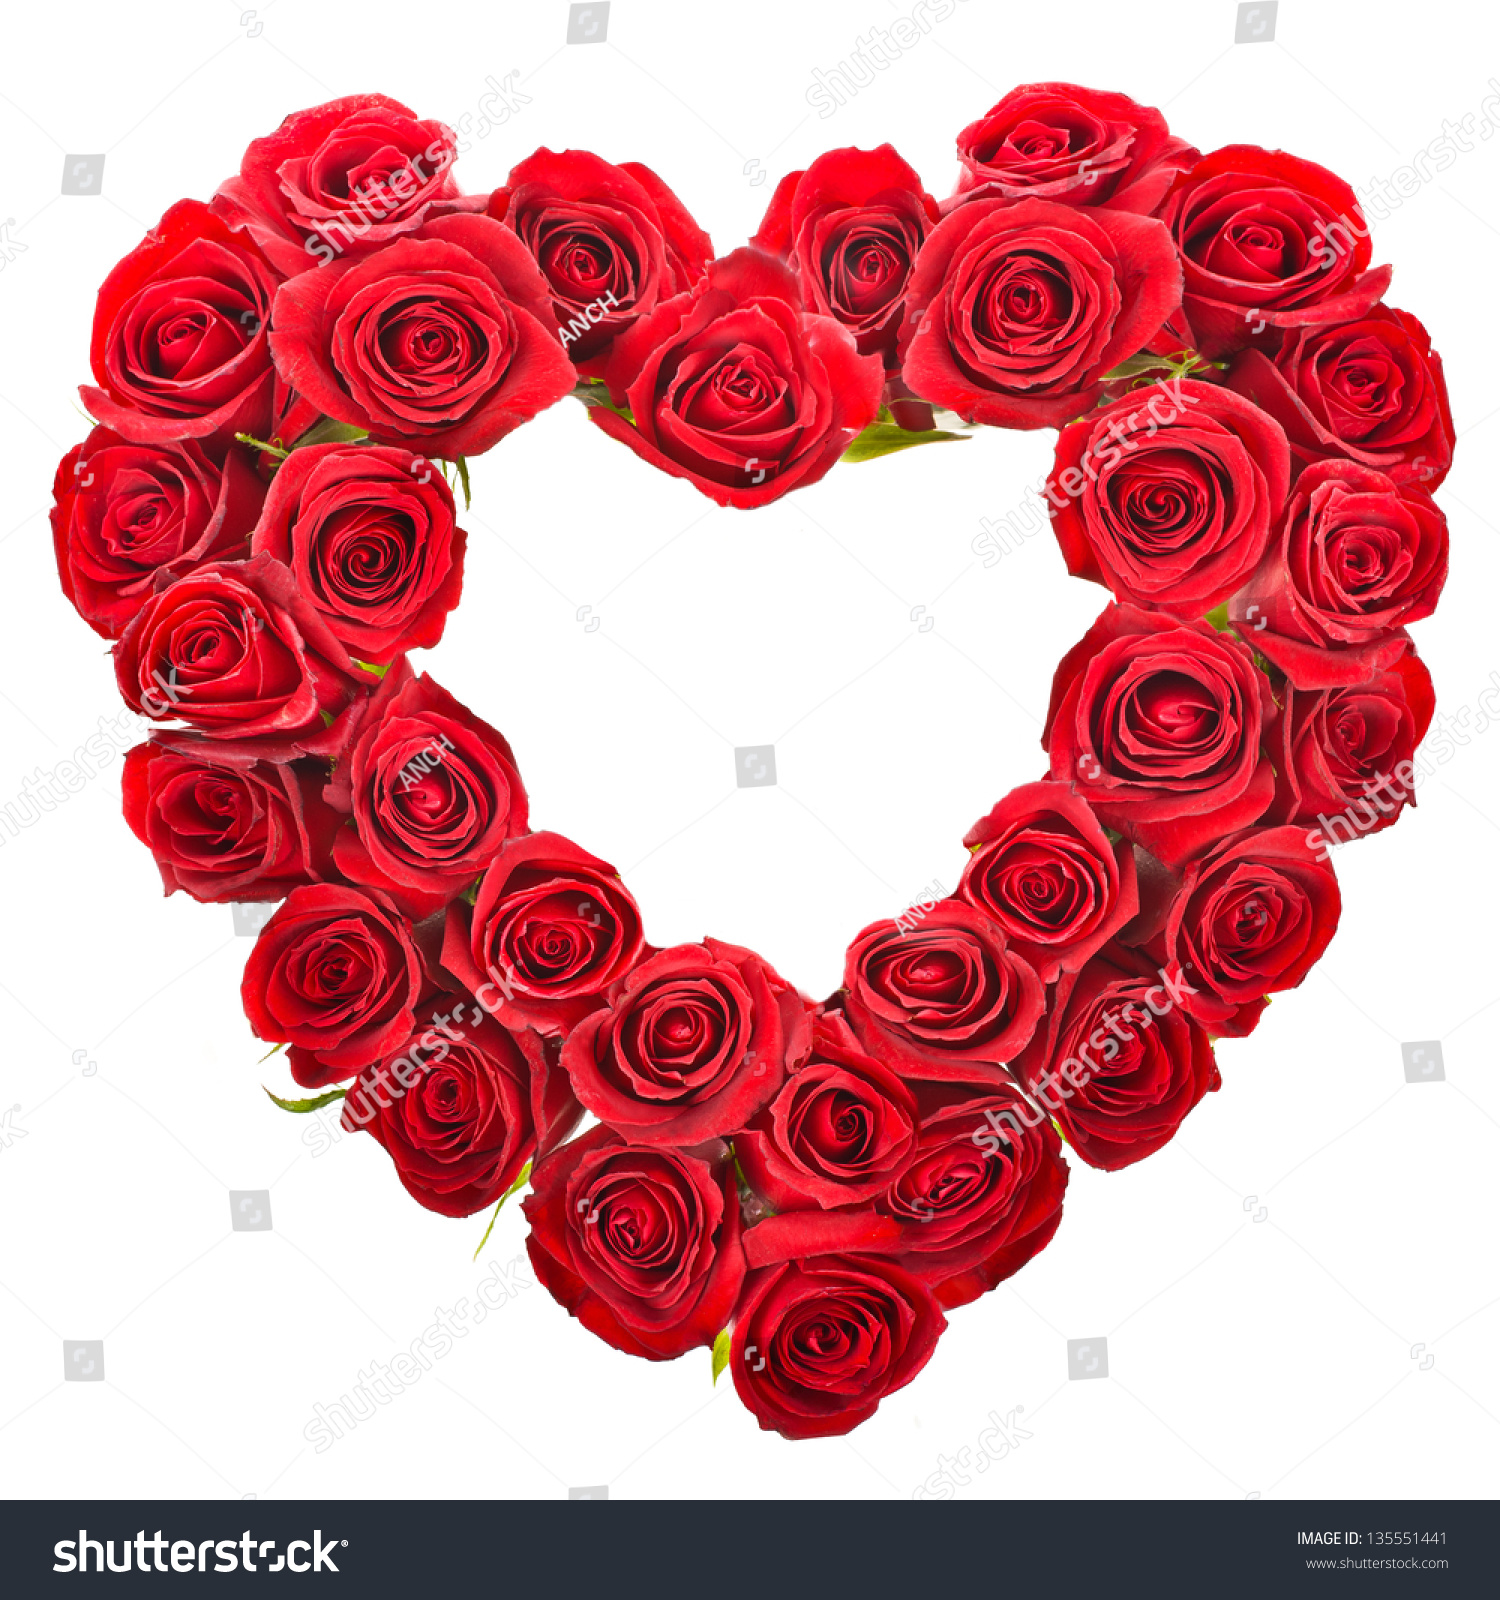 Heart Shaped Bouquet Red Roses Isolated Stock Photo (Edit Now ...